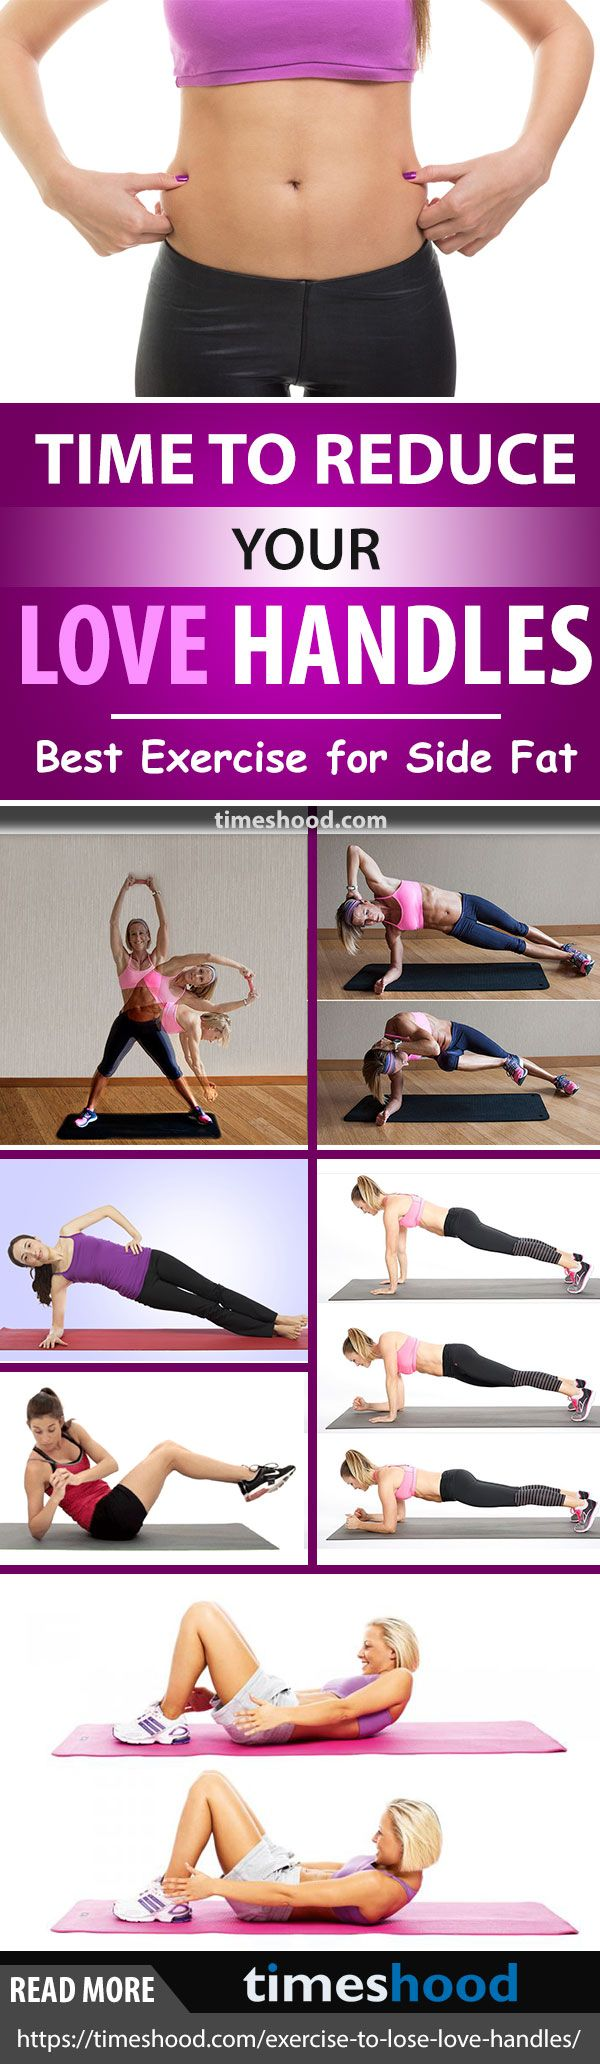 7f7db357fba4b83a9363e3e9b17310d2 - How To Get Rid Of Hips And Love Handles